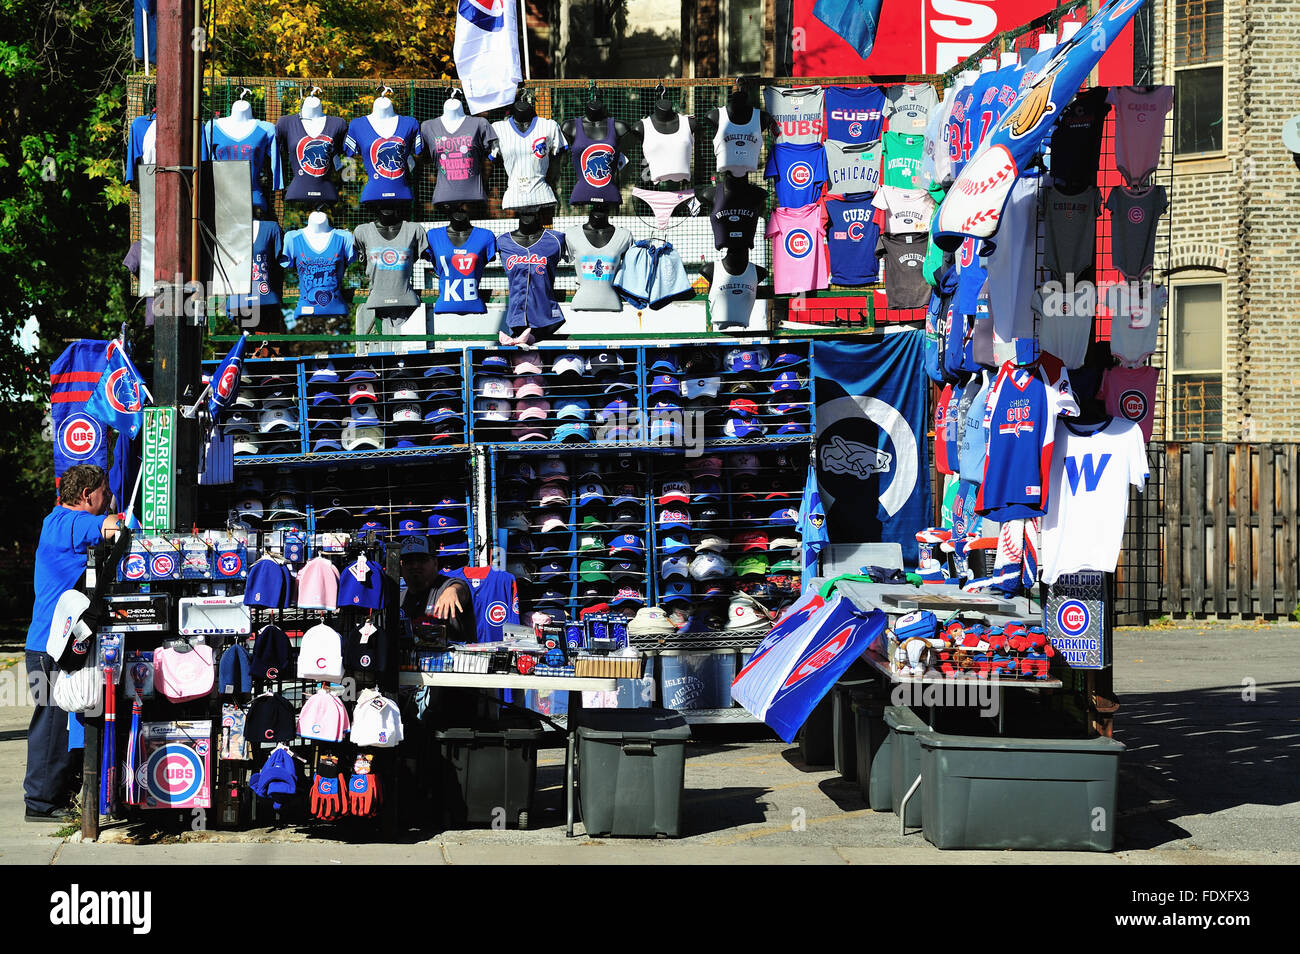 fa0448abab5 Chicago Cubs merchandise for sale at a street vendor location at a corner  just across the street from Wrigley Field. Chicago